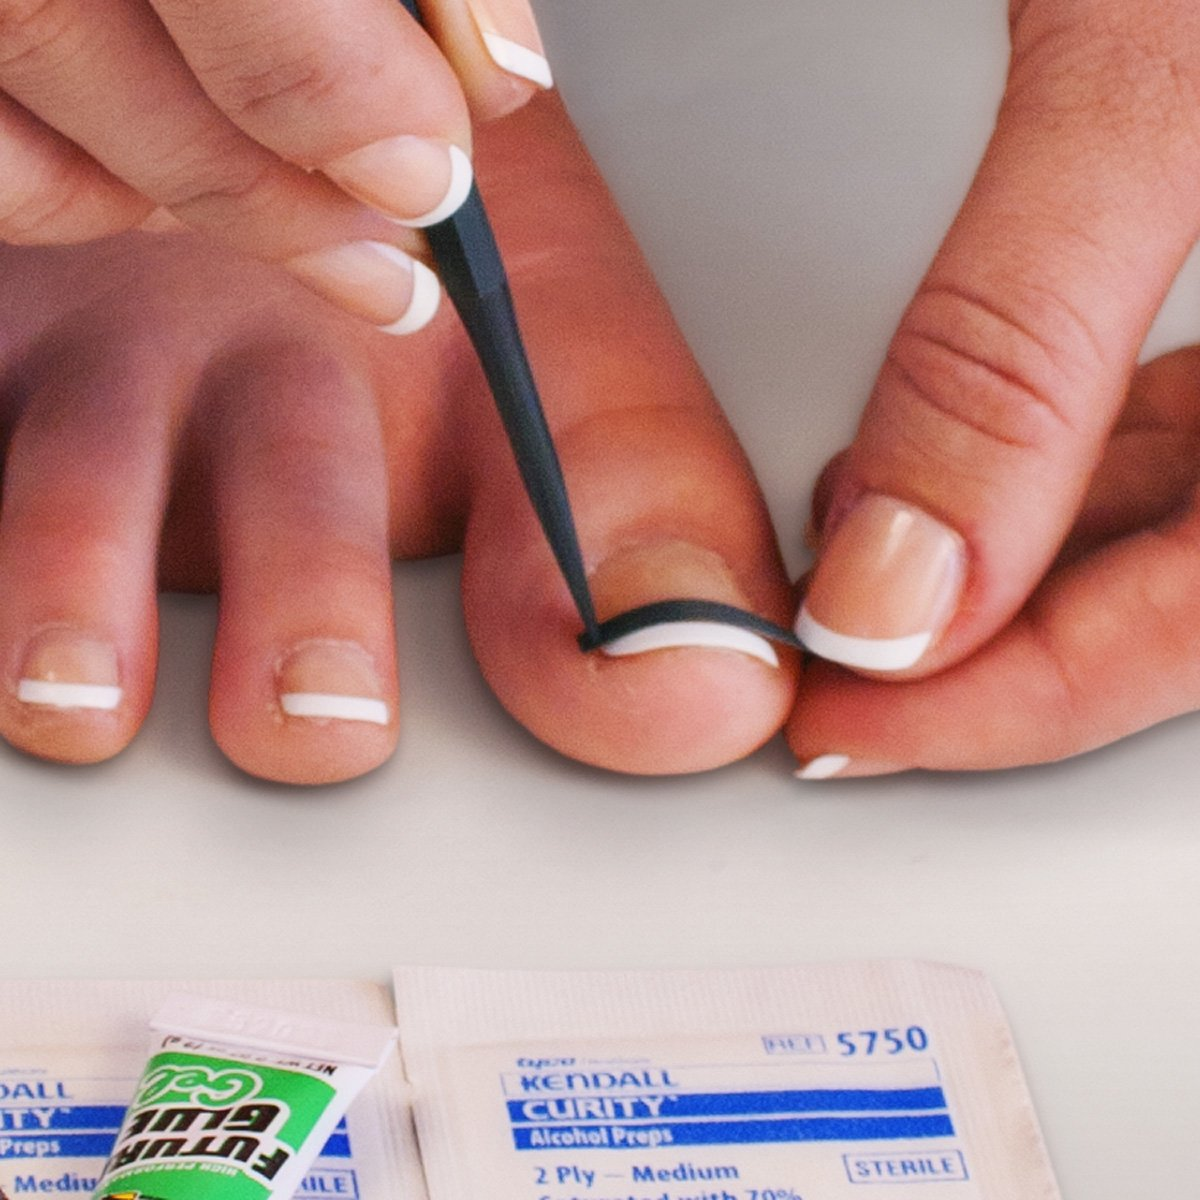 NailEase Ingrown Nail Treatment